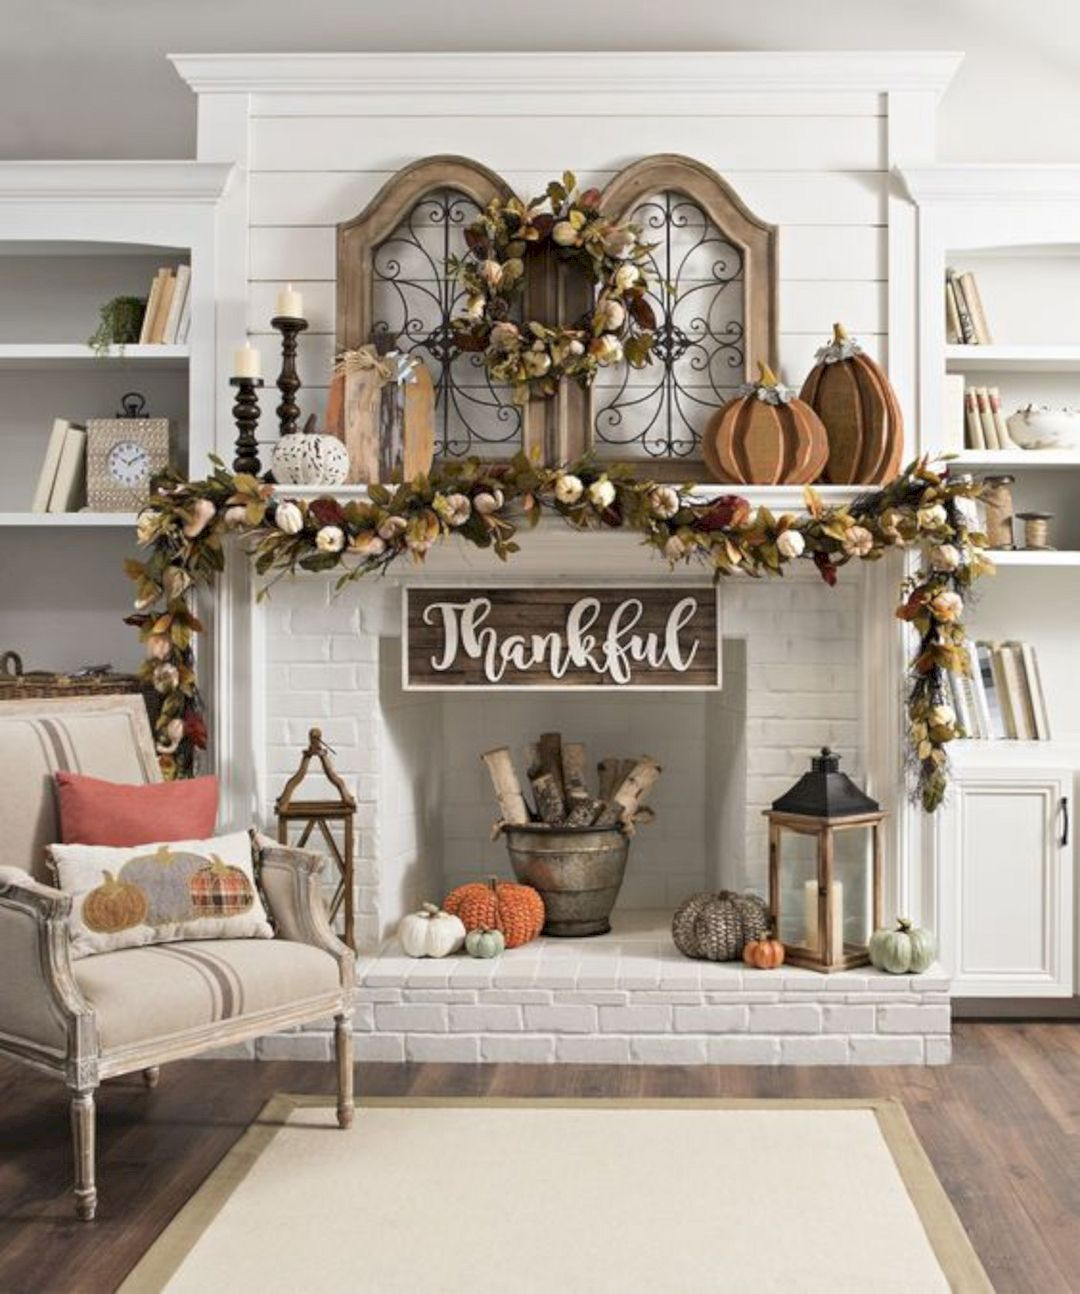 15 Awe-Inspiring Fall Decorating Ideas #fallmantledecor